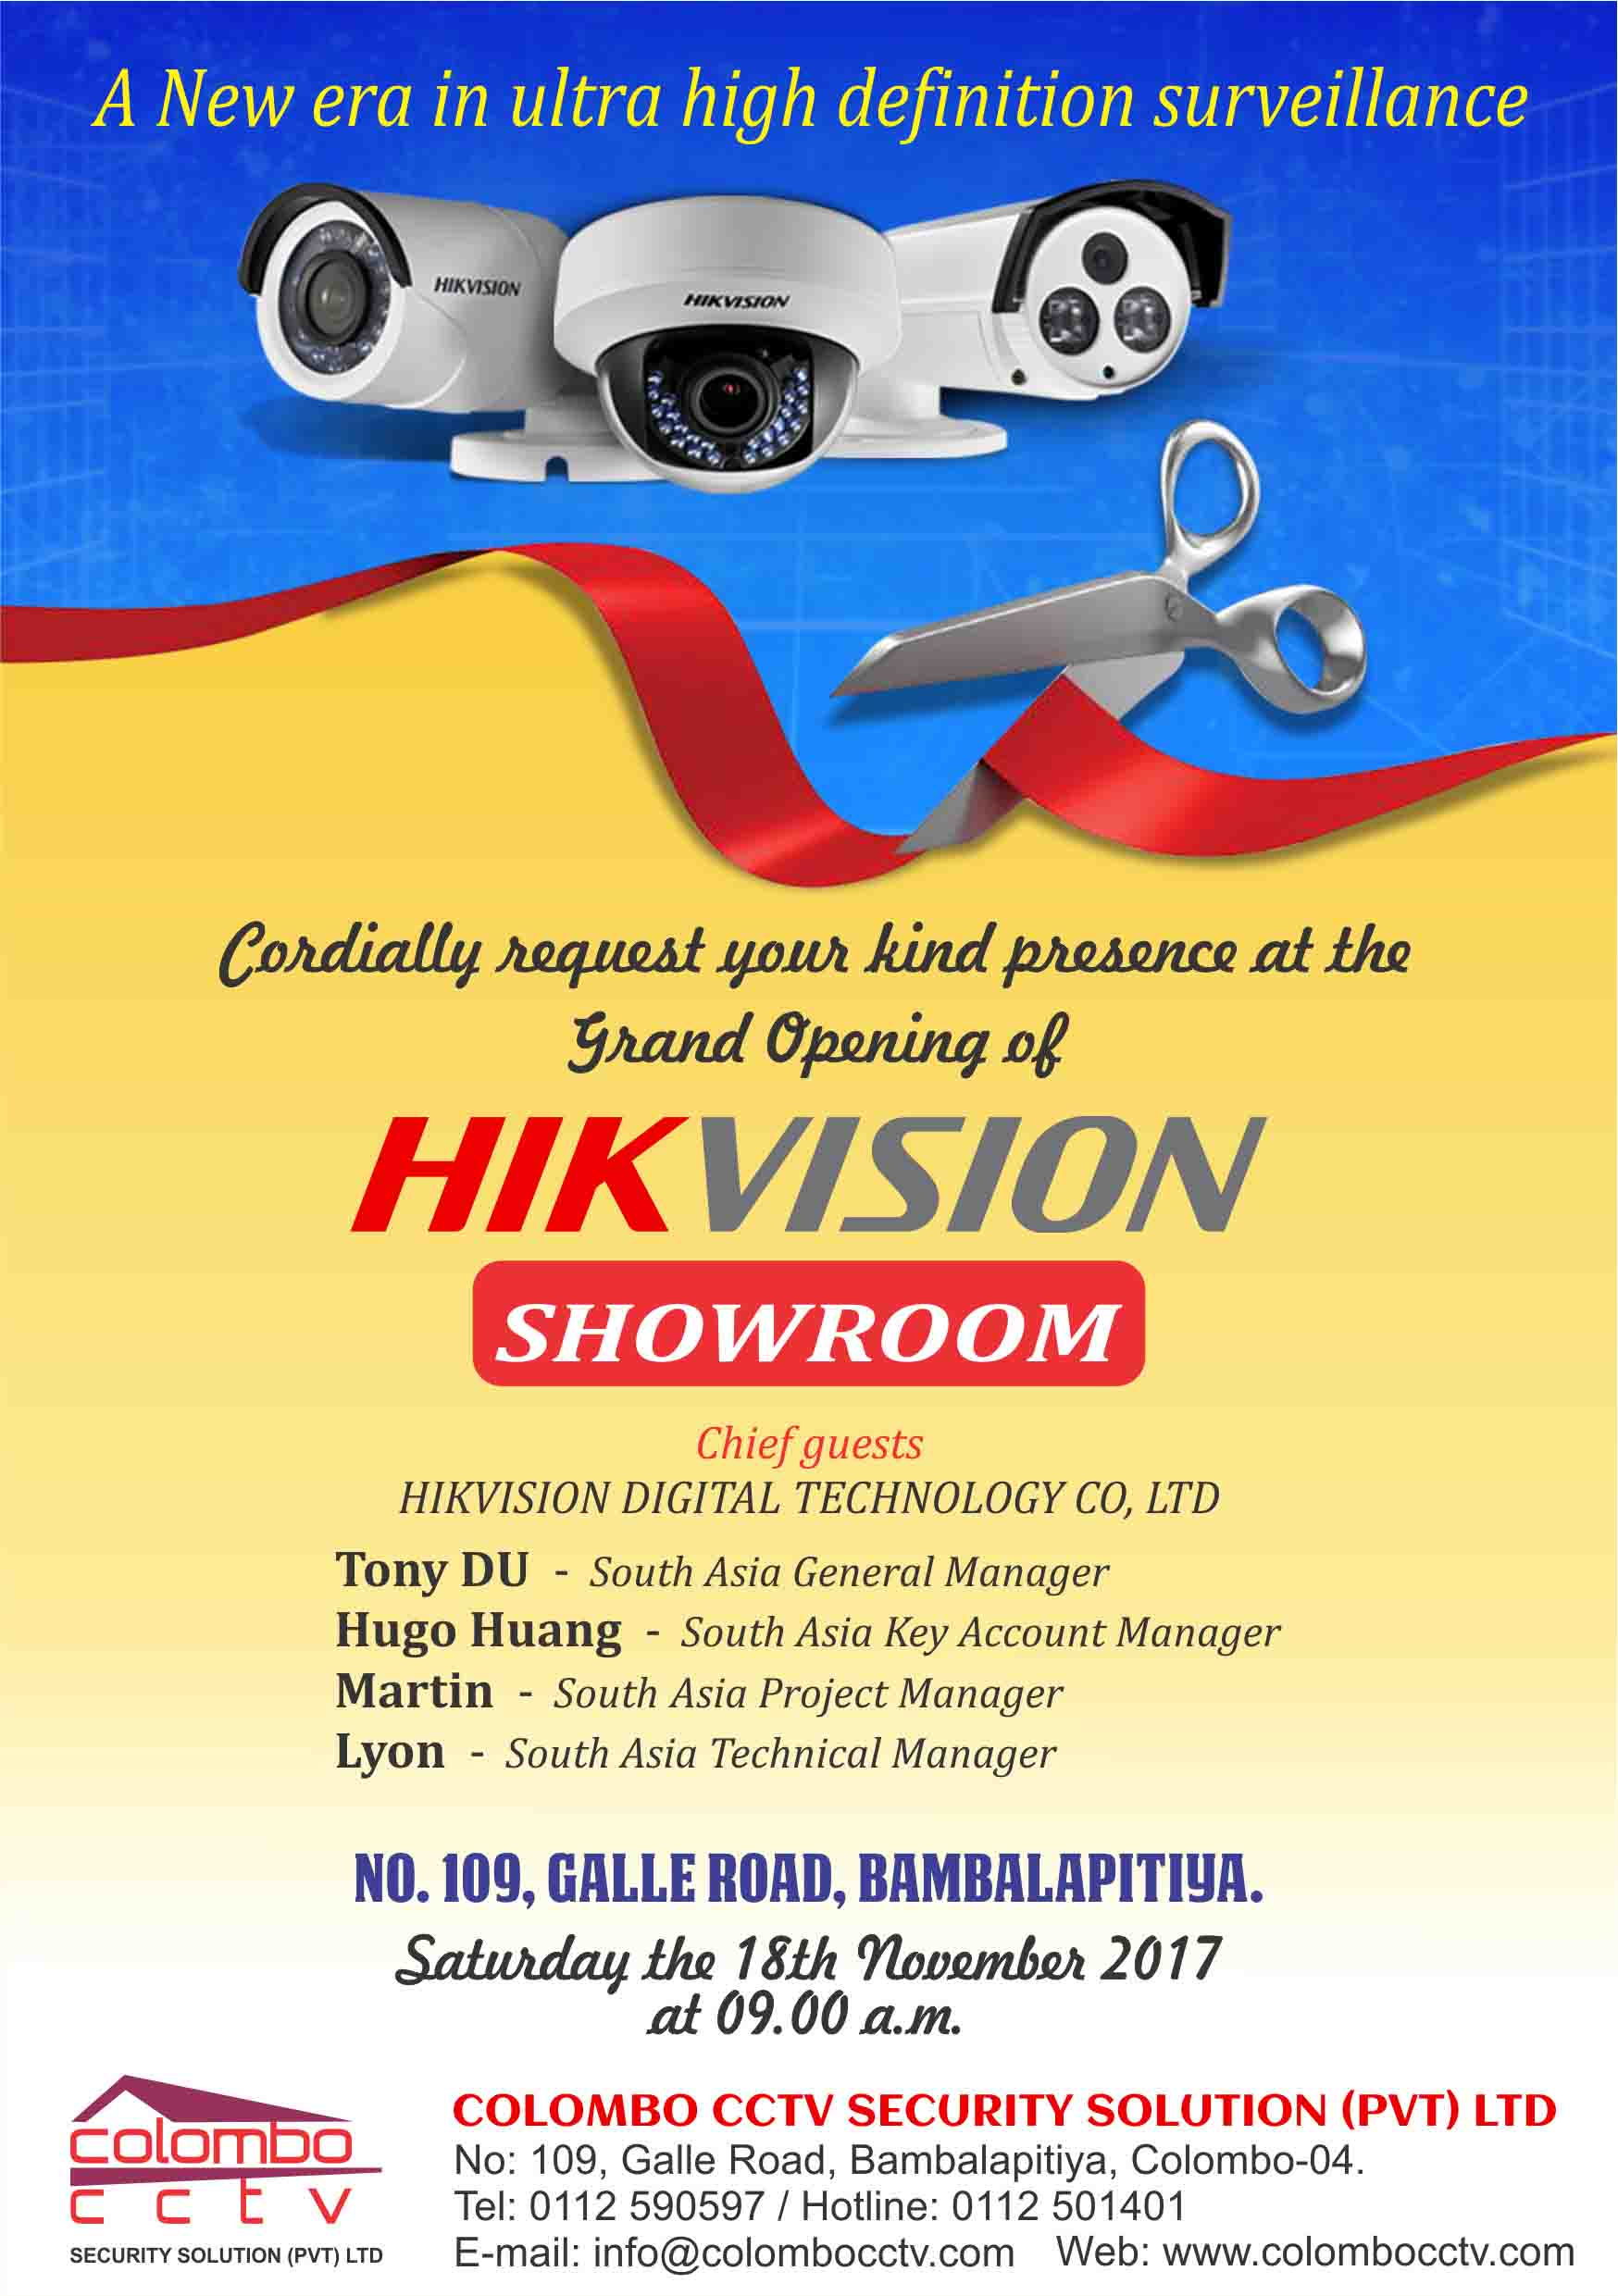 Best Hikvision Cctv Security Solution Cameras Dvr Shop In Colombo Avtech Wiring Solutions Ltd Invitation Card Copie